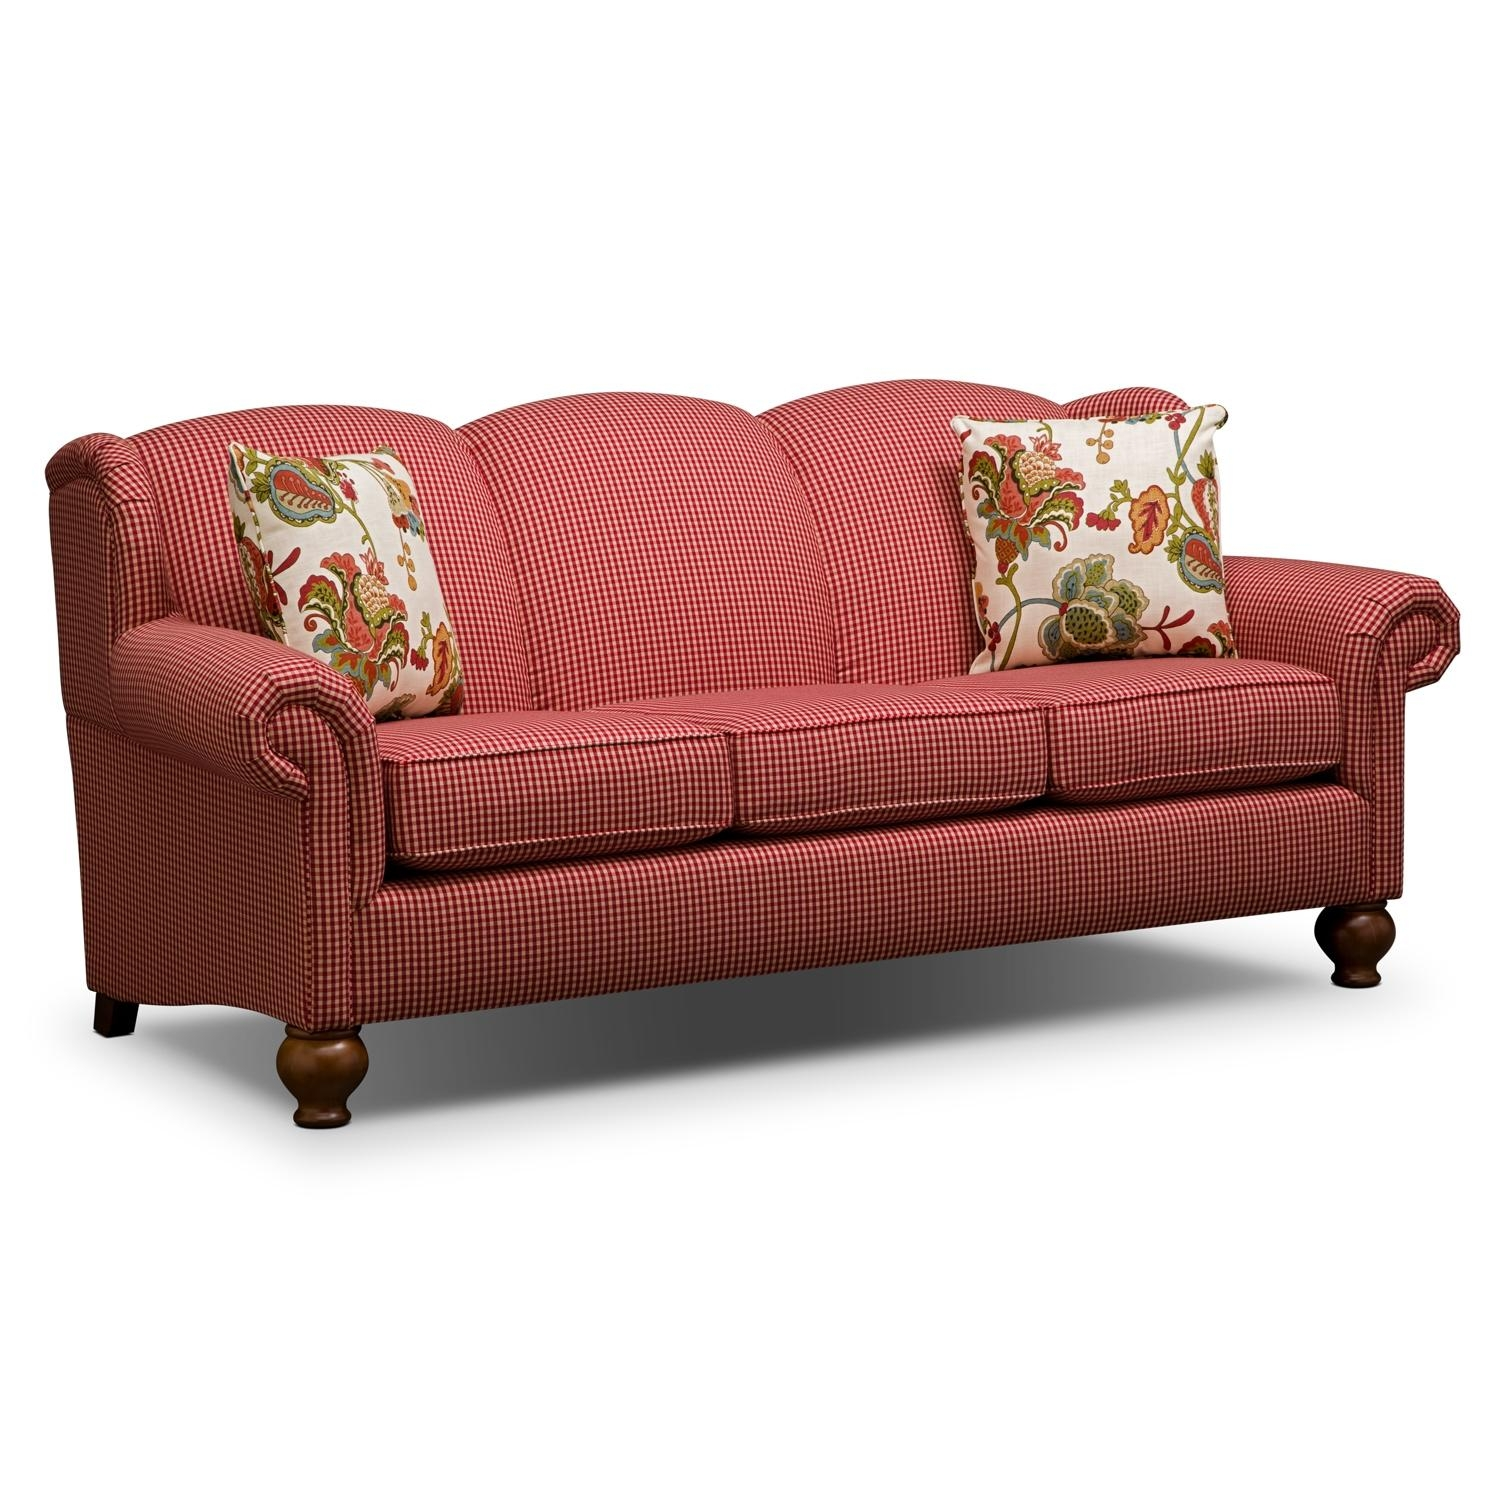 Red Gingham Sofa Throughout Gingham Sofas (View 2 of 20)